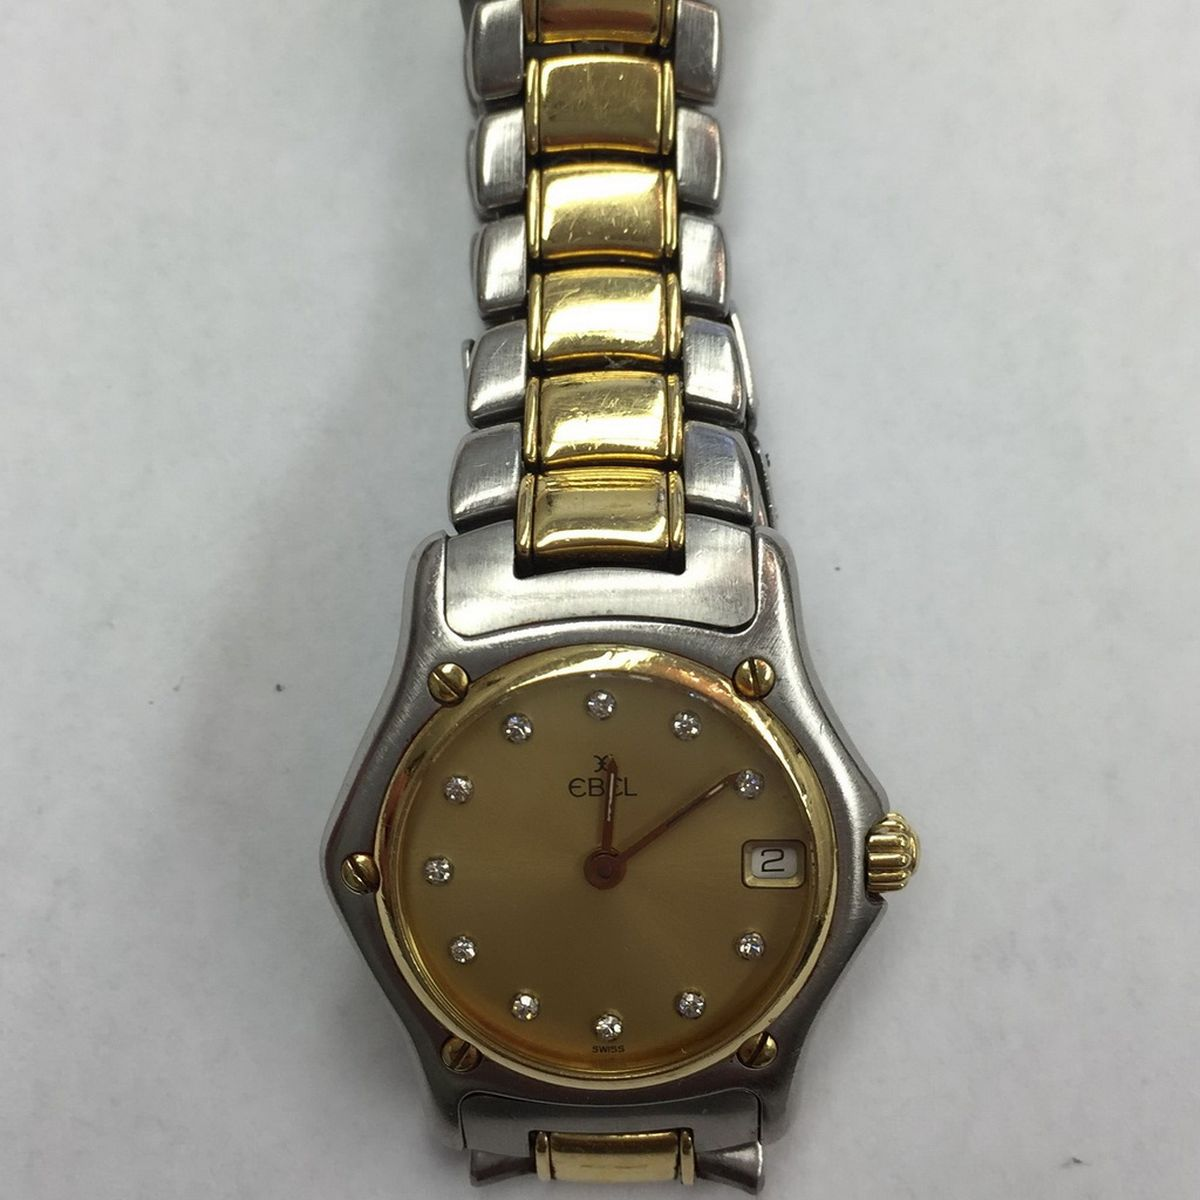 Village Watch Center Repairs & Sells New & Used Ebel Watches